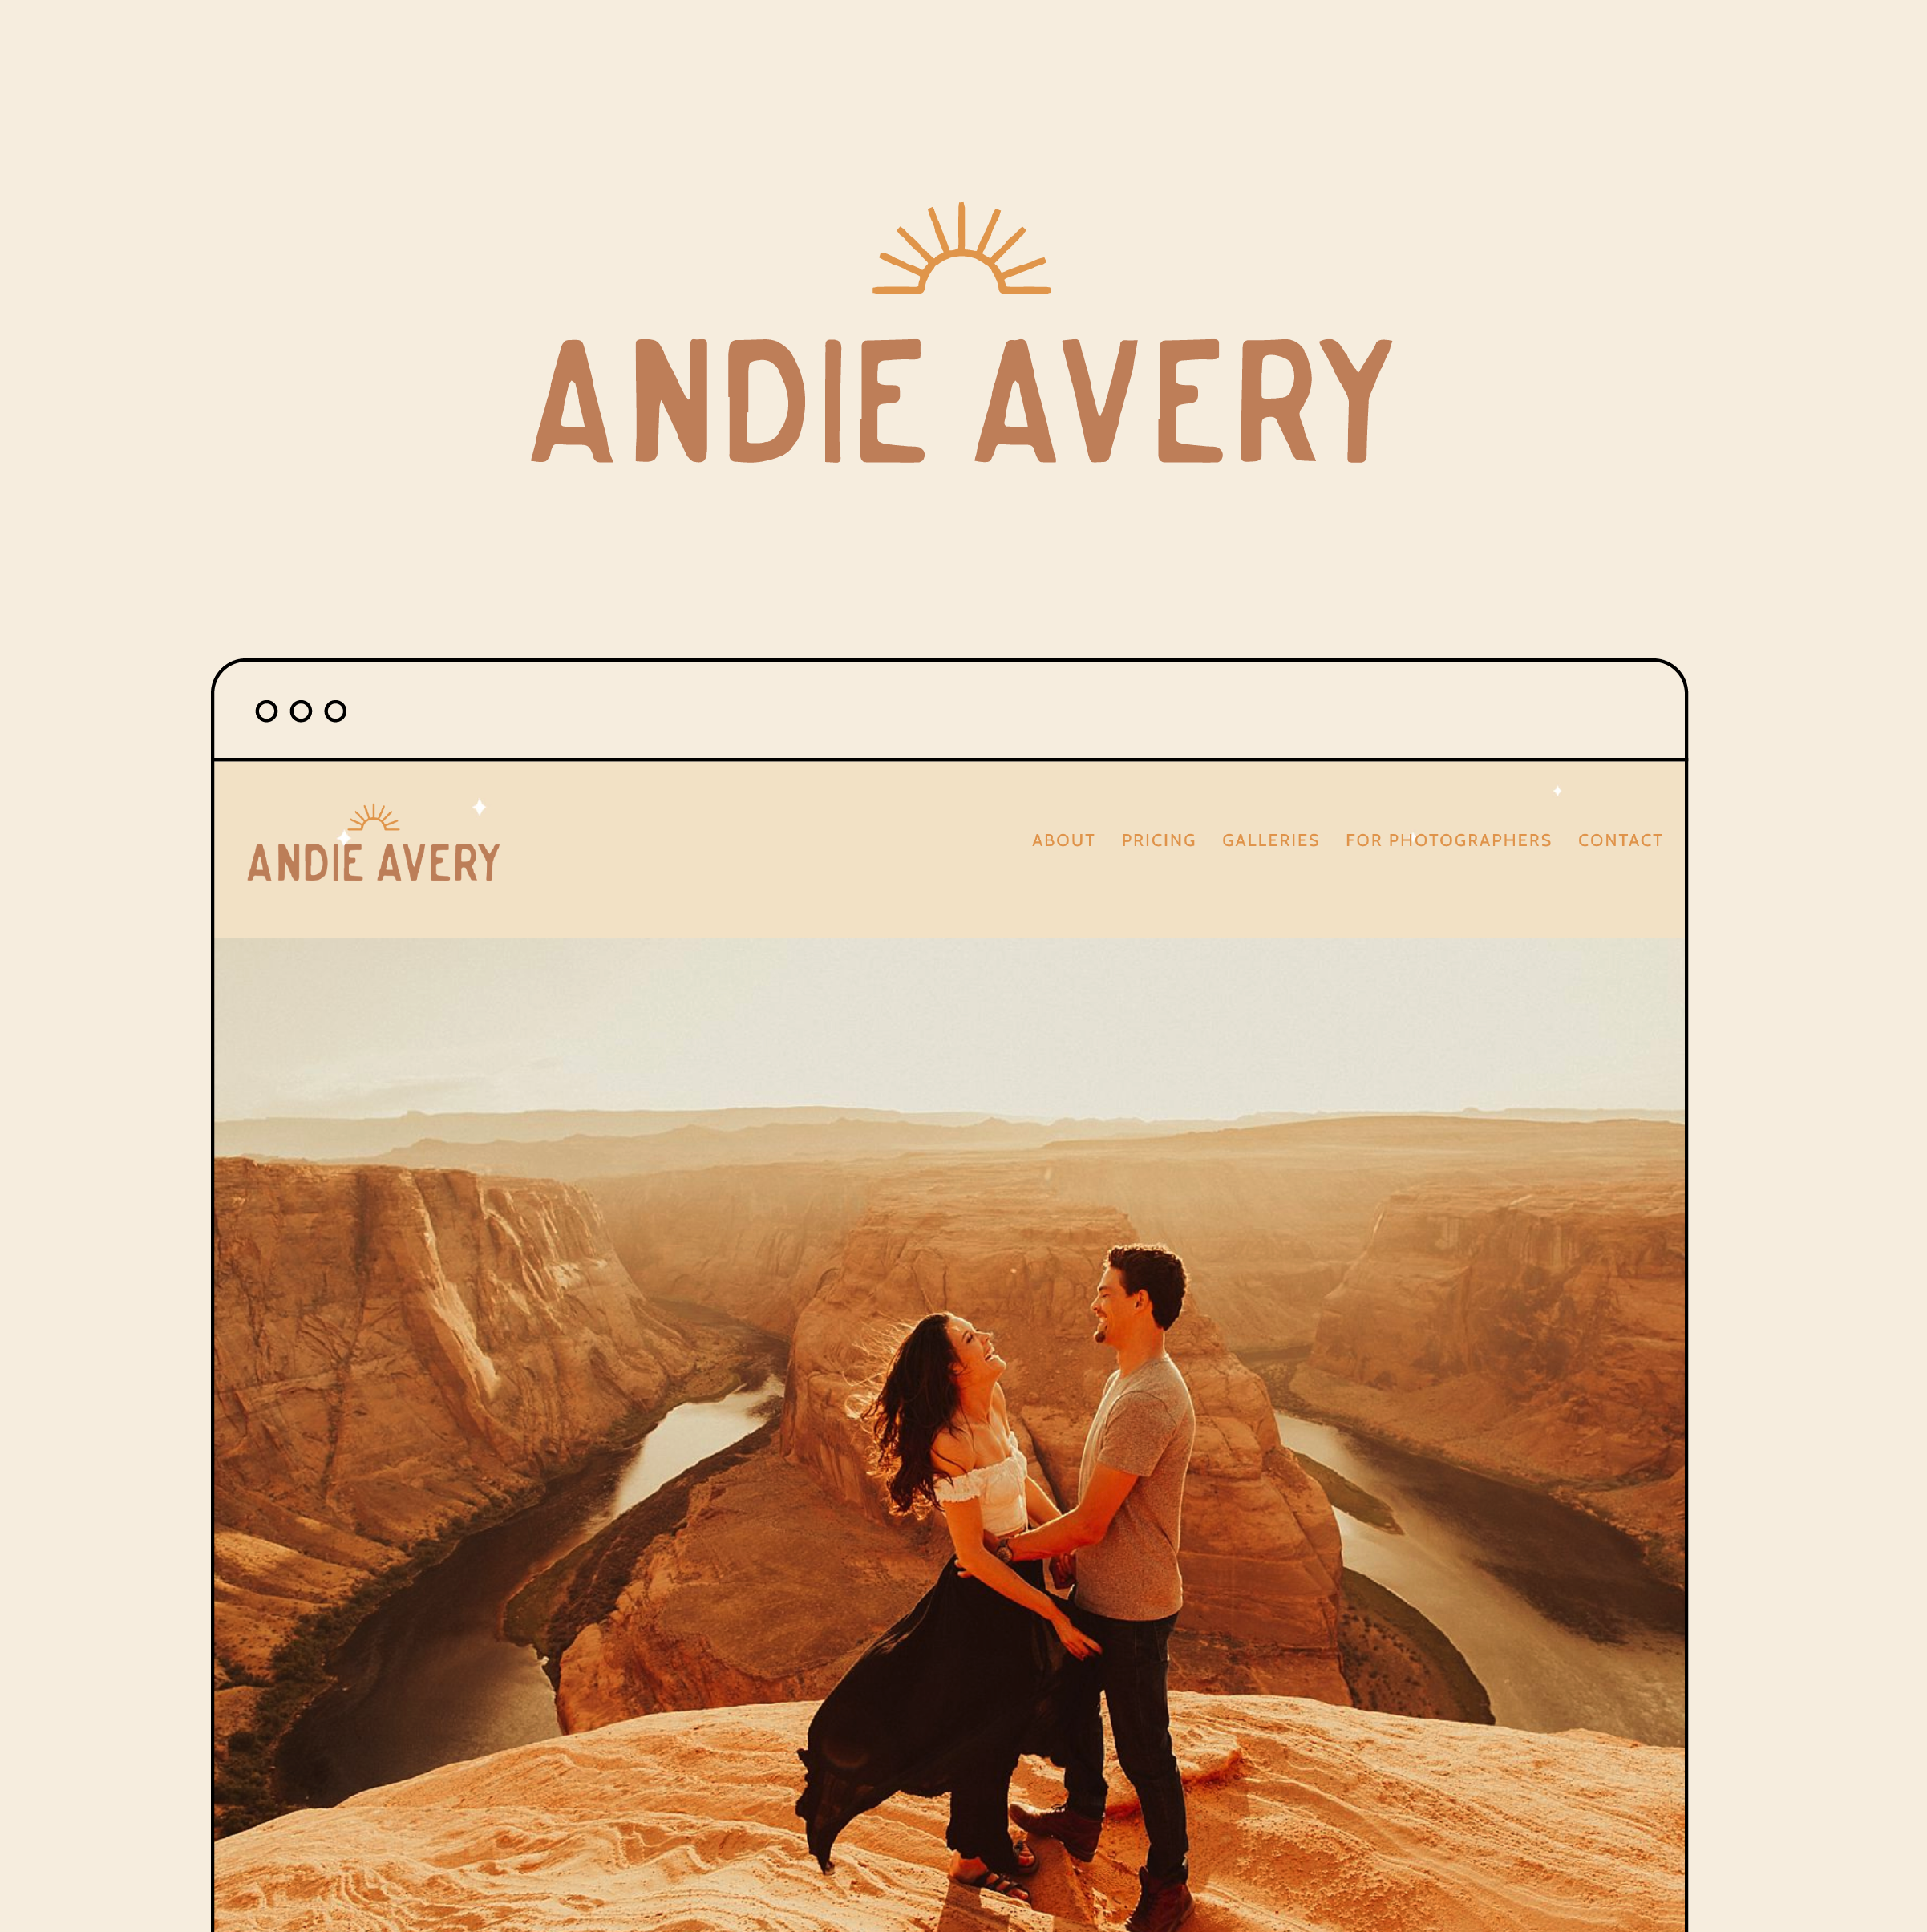 AndieAvery-1.png